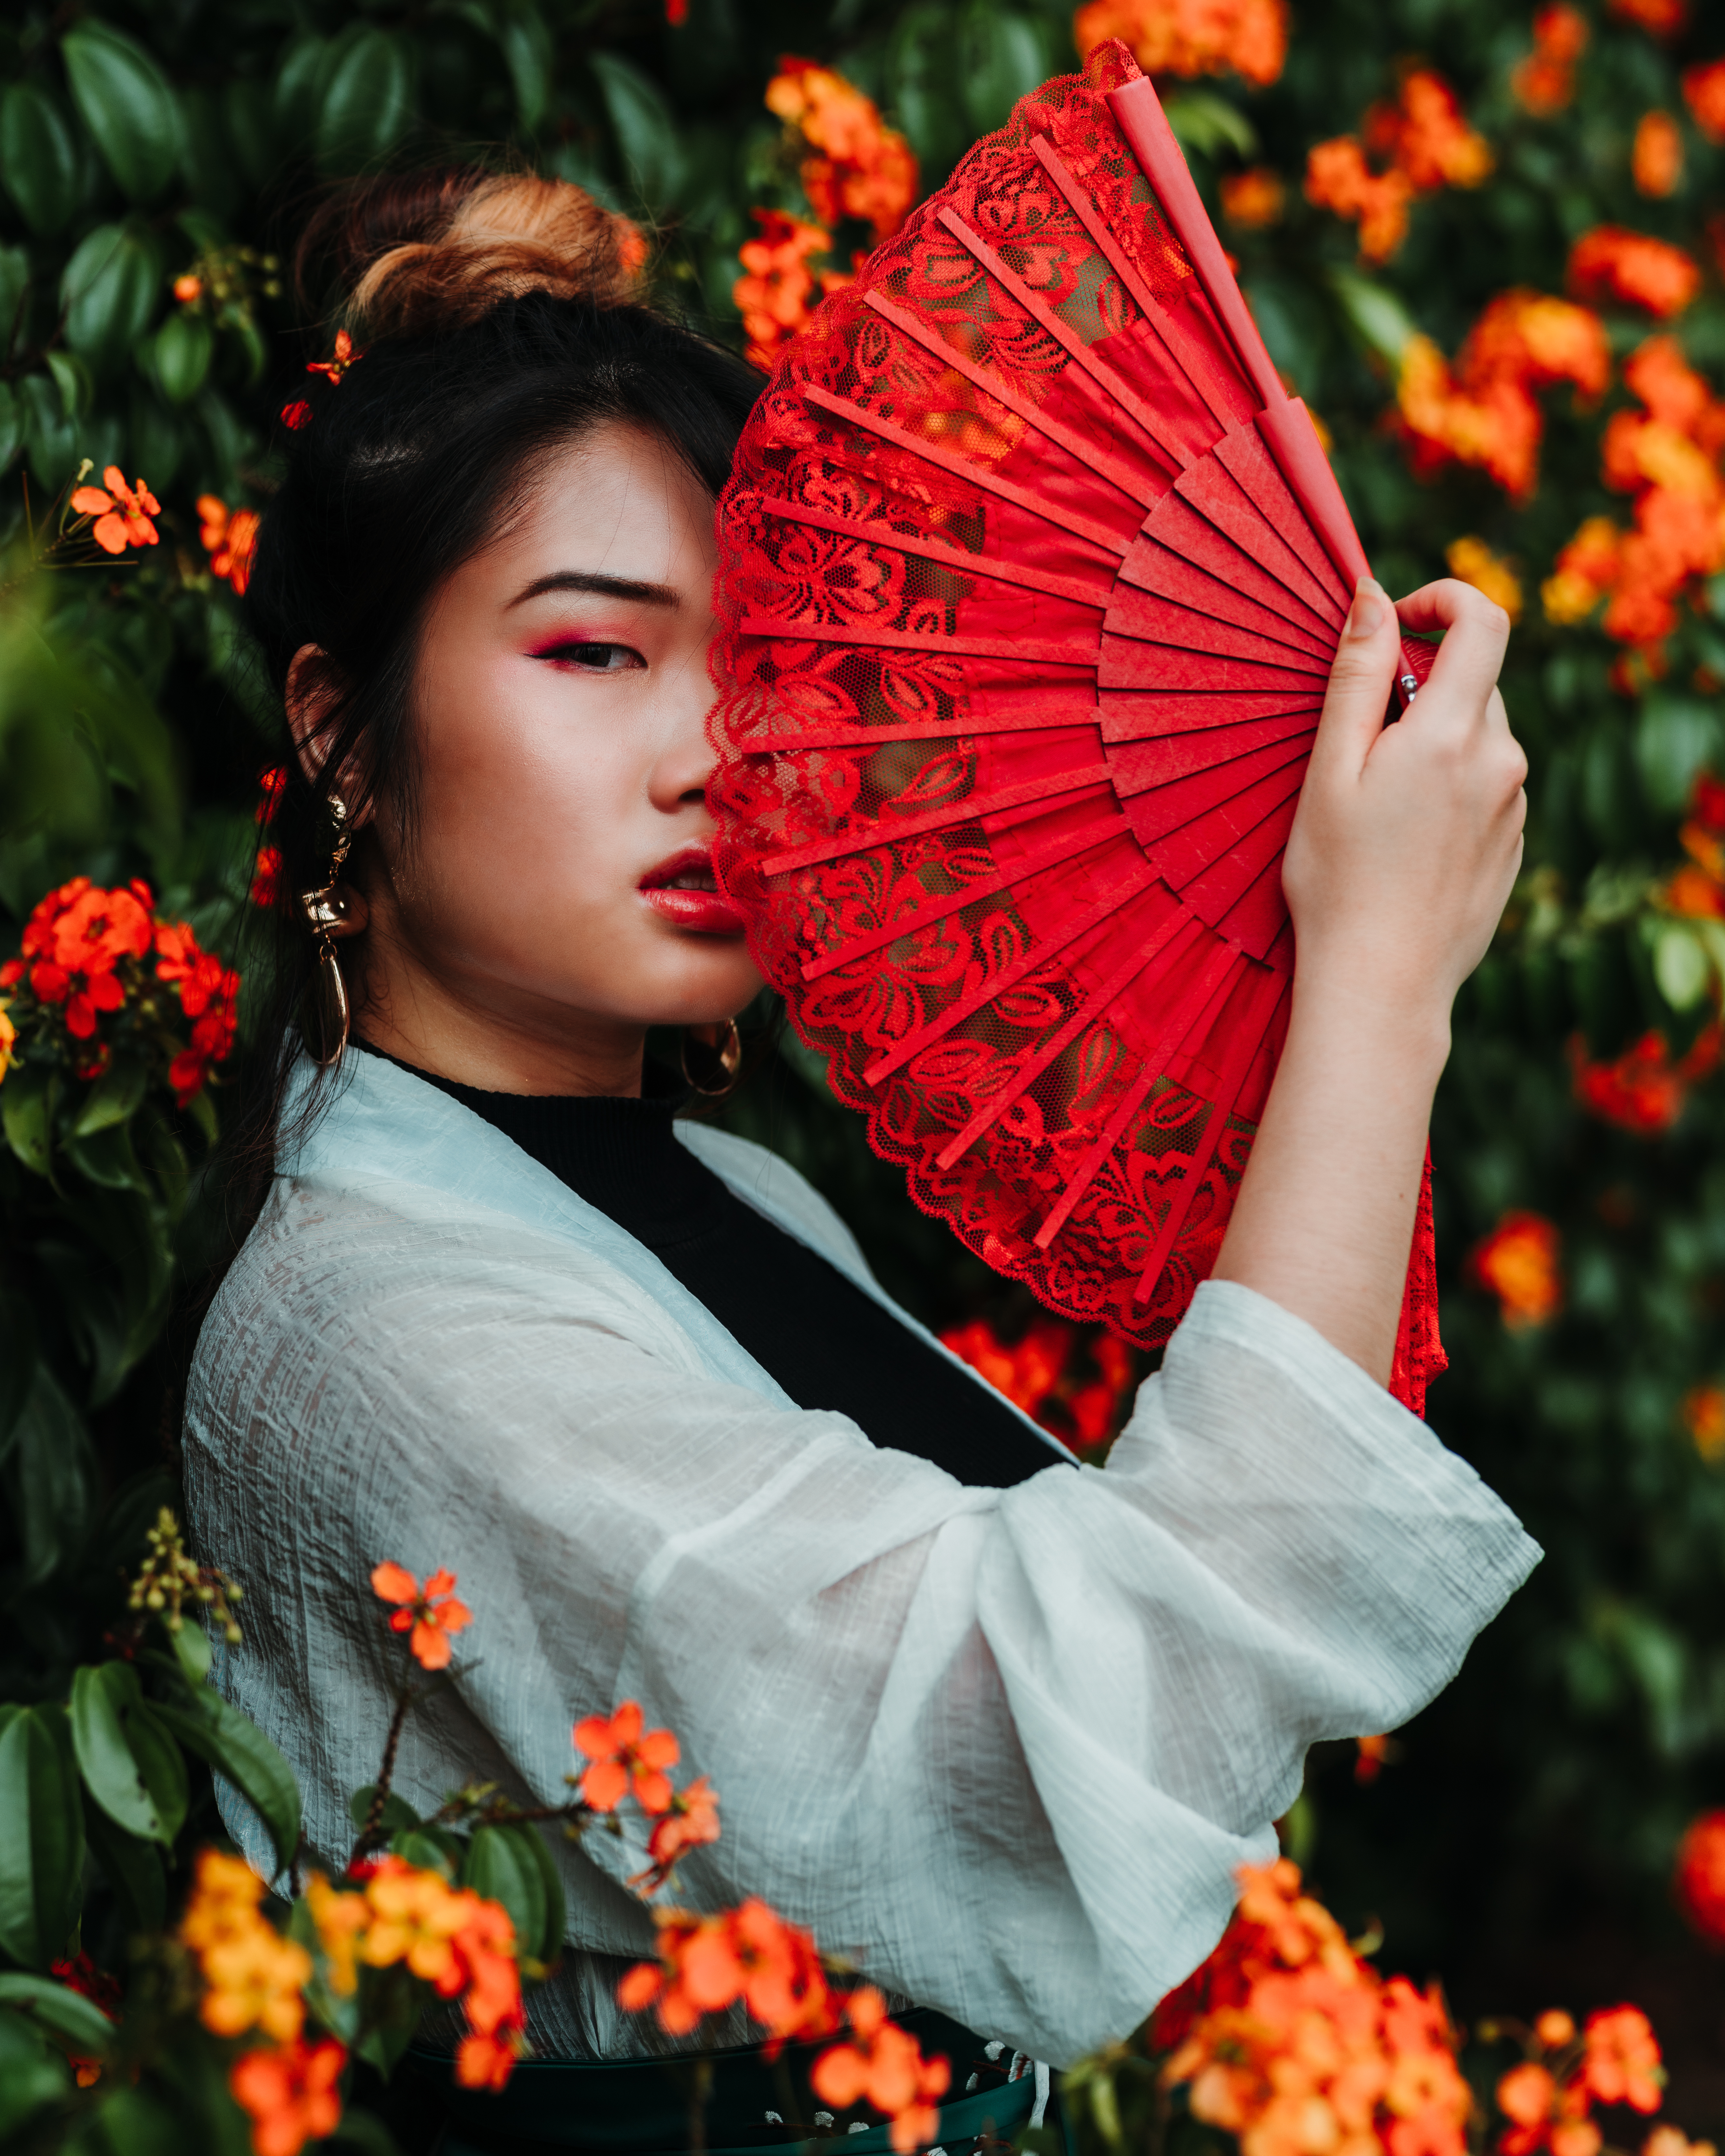 Woman Holding Red Fan Beside Plant With Flowers